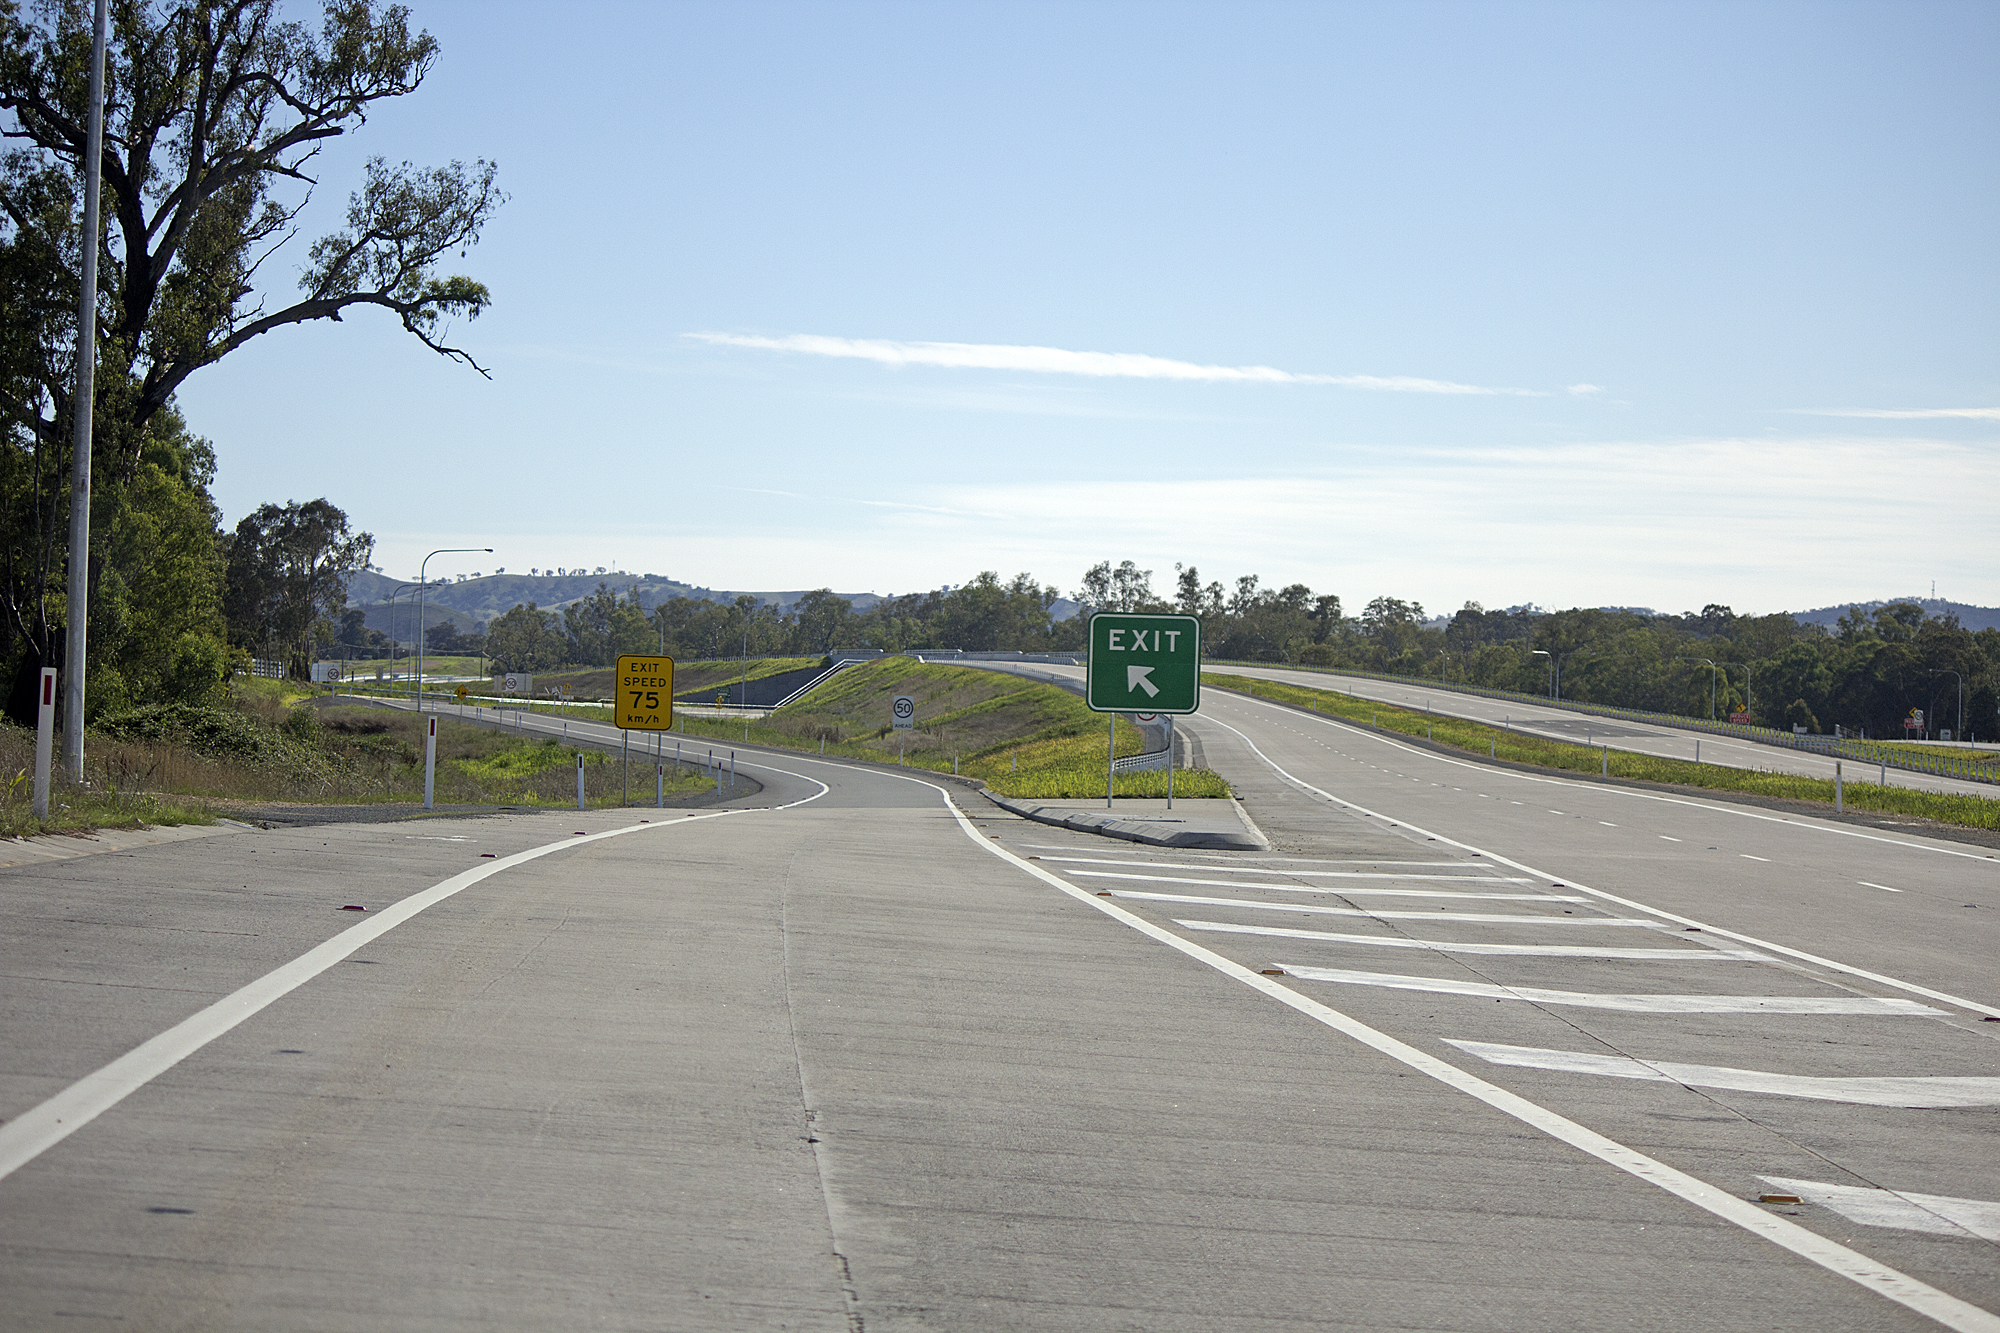 File:Tarcutta exit on the Hume Highway jpg - Wikimedia Commons